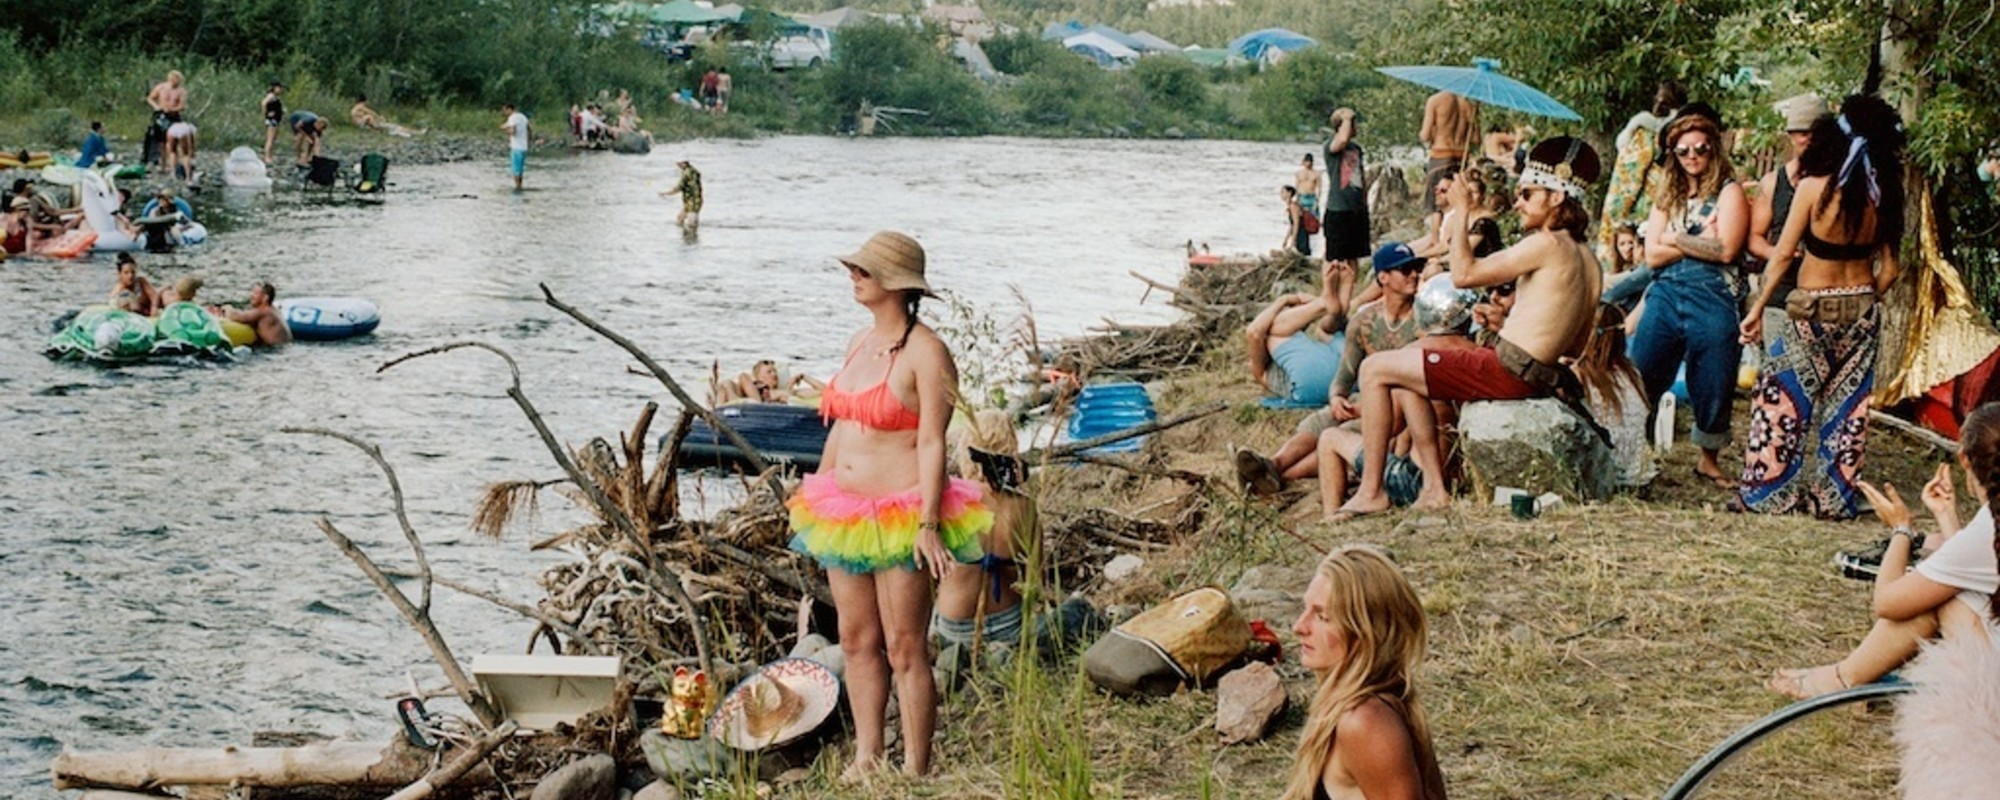 In Photos: The Psychedelic Beauty of BC Music Festivals